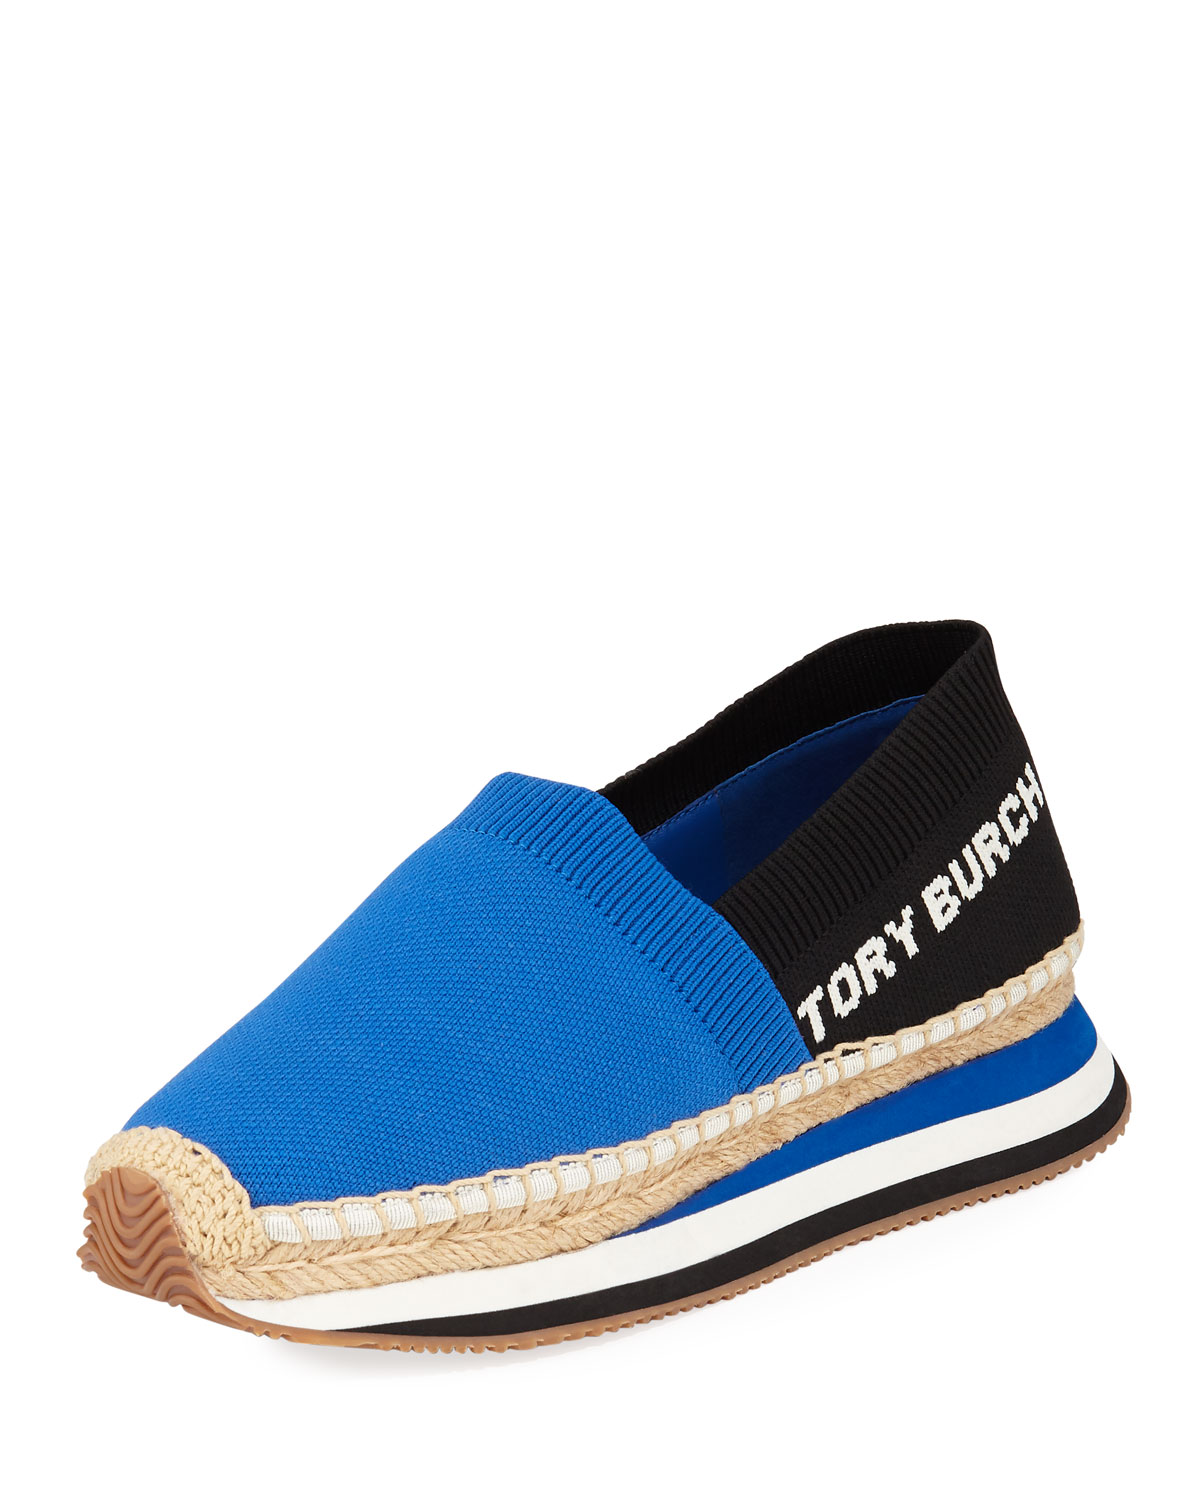 81eed4420aca Tory Burch Daisy Stretch-Knit Espadrille Sneakers